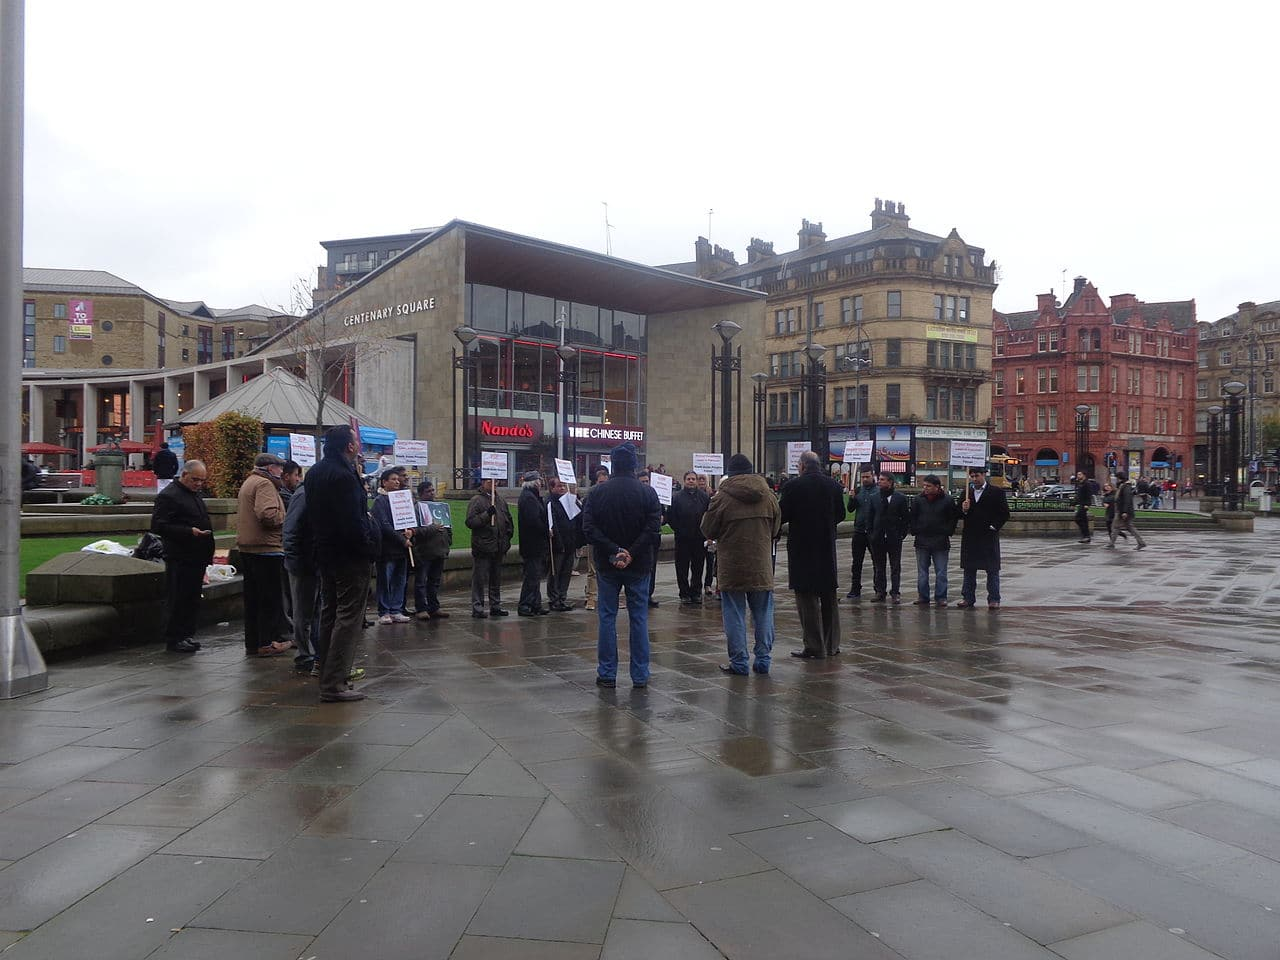 Anti-Pakistani blasphemy law protest, Centenary Square, Bradford, West Yorkshire. Taken on the afternoon of Saturday the 8th of November 2014. CC BY-SA 4.0